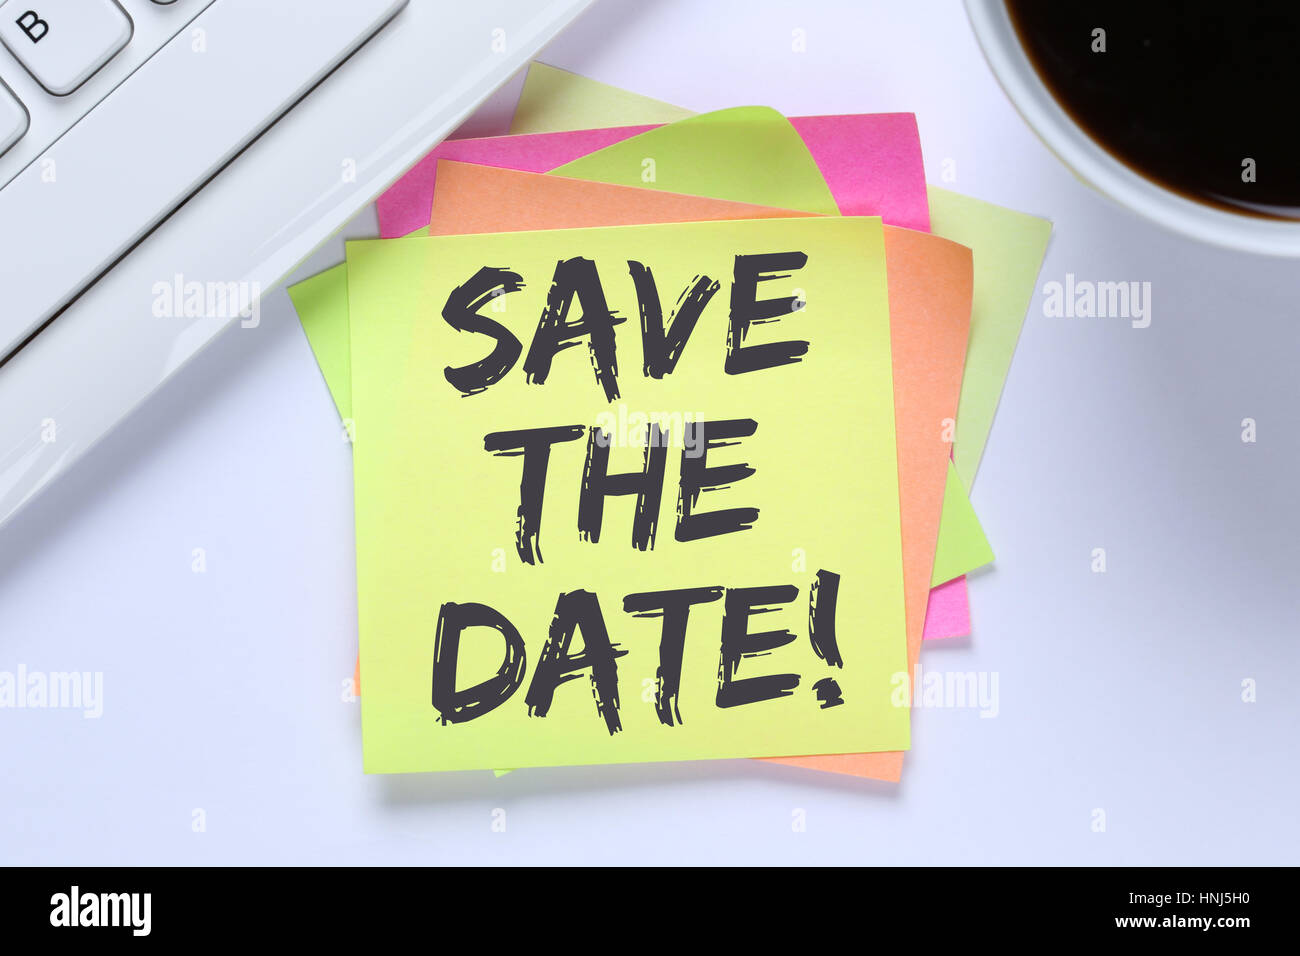 Save the date invitation message business information desk computer keyboard - Stock Image